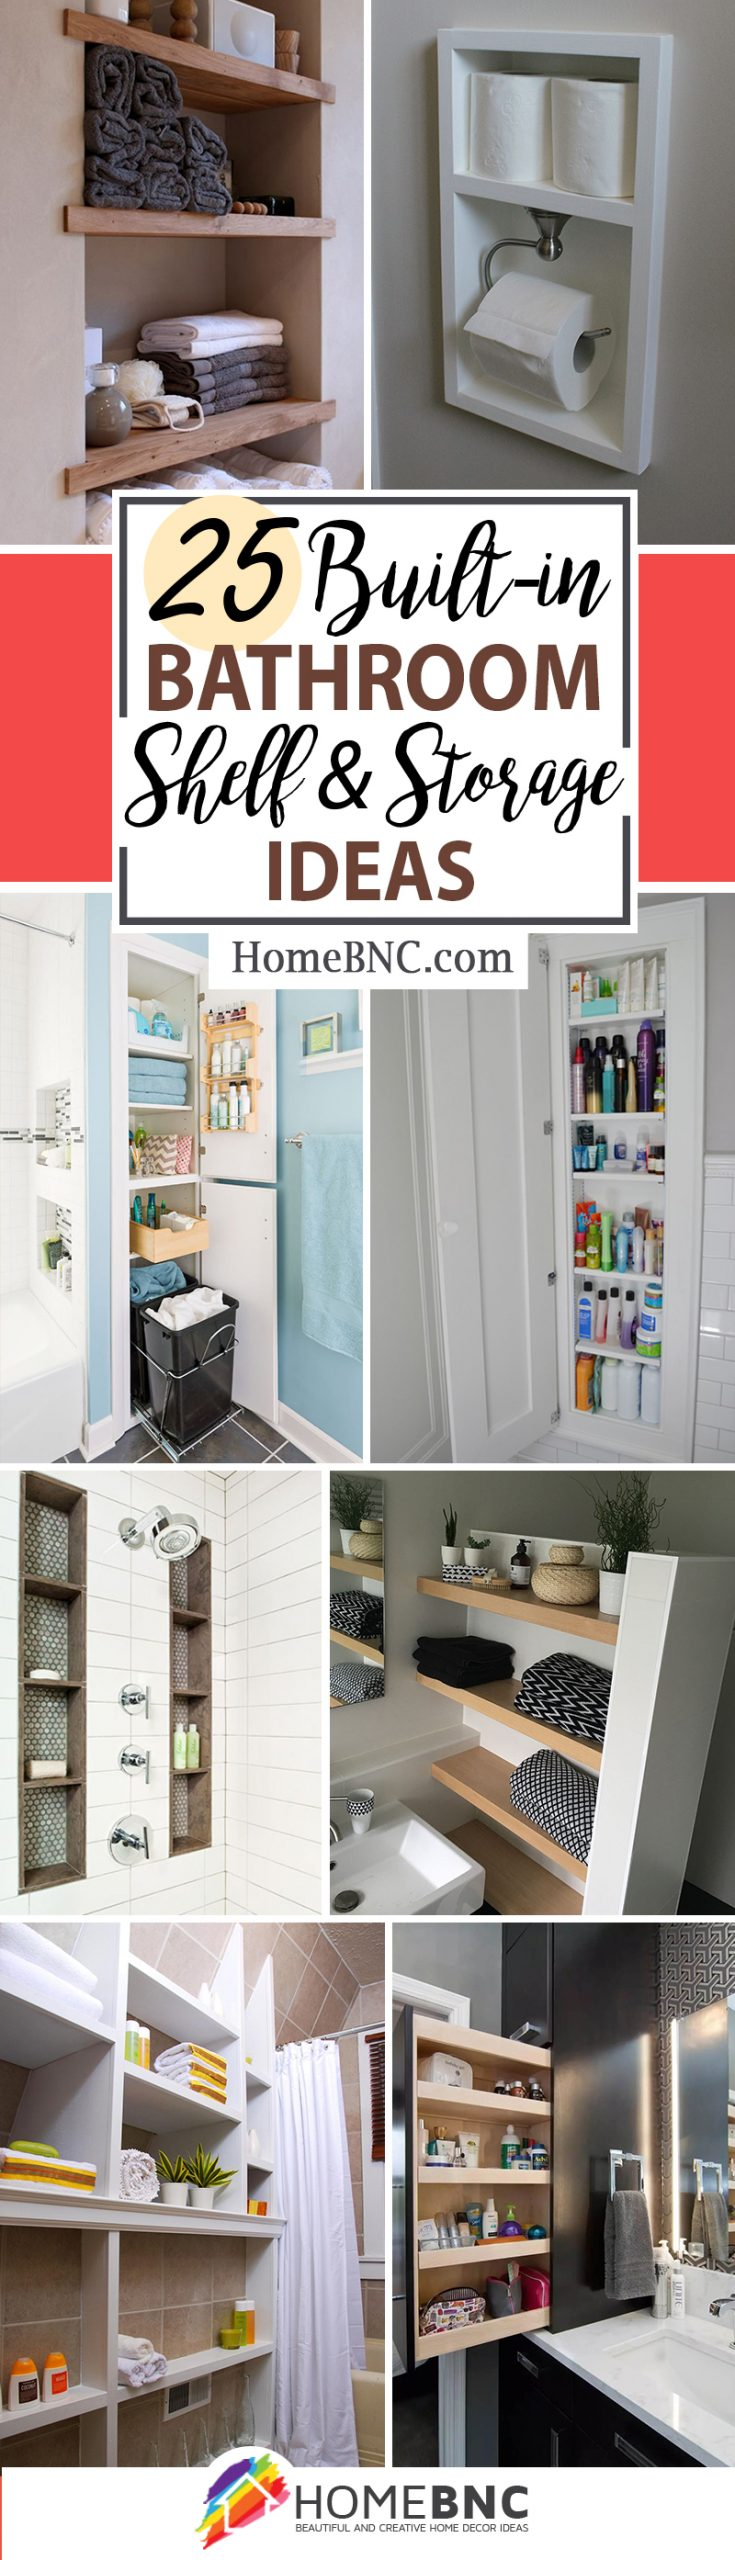 Built-in Bathroom Shelf and Storage Ideas